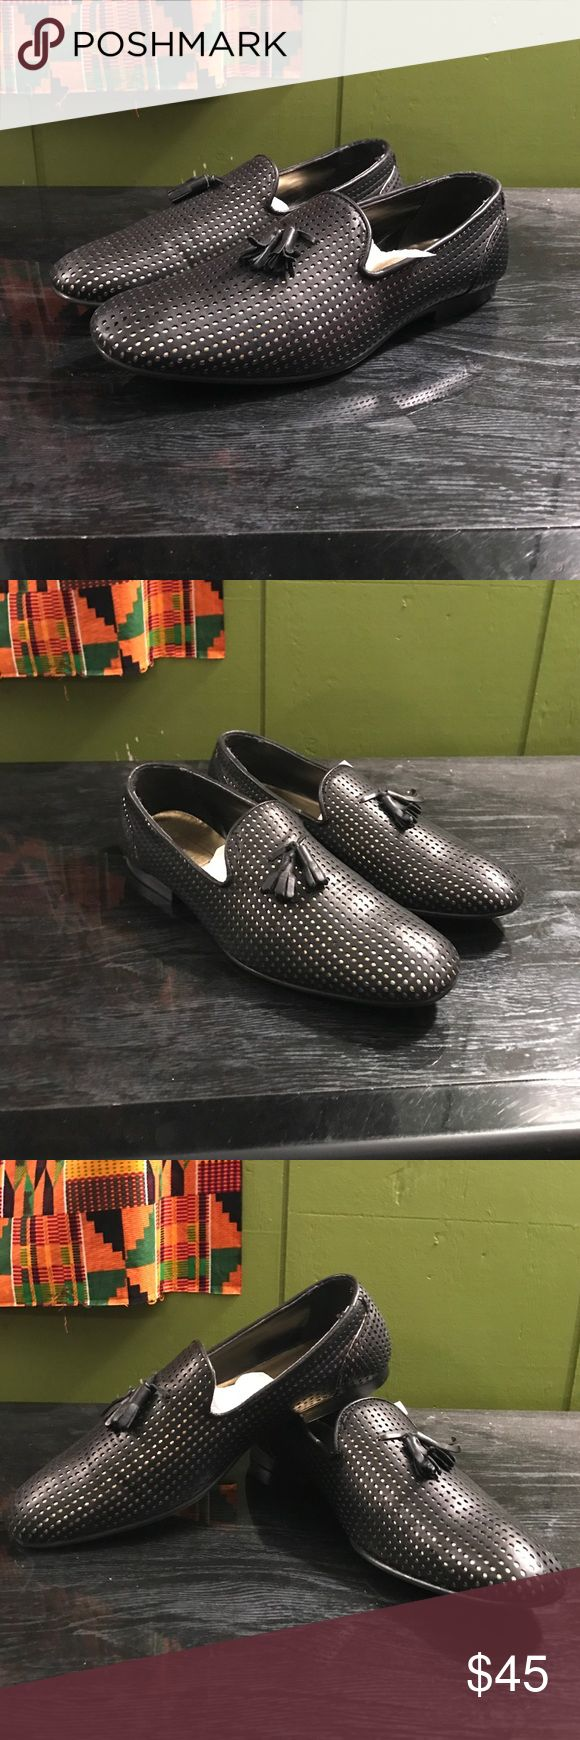 ASOS Dress loafers Men's, Gold/black, loafers, size 10, 10/10 condition (worn twice) ASOS Shoes Loafers & Slip-Ons